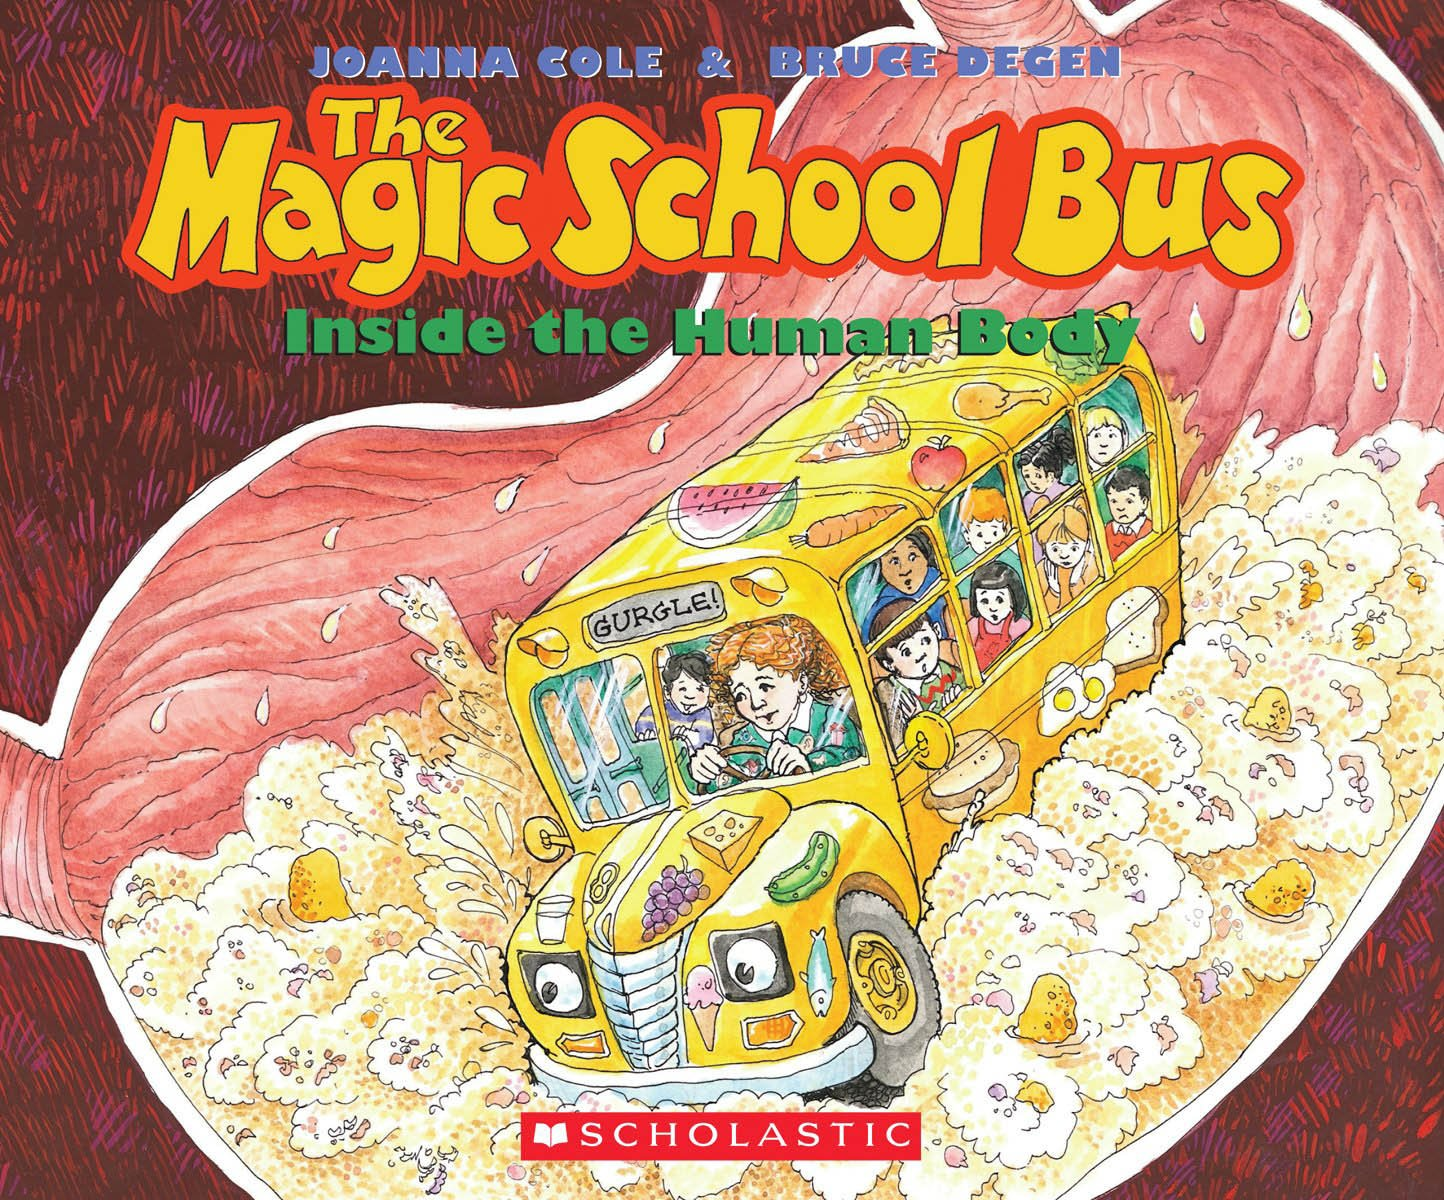 amazon the magic school bus inside the human body joanna cole